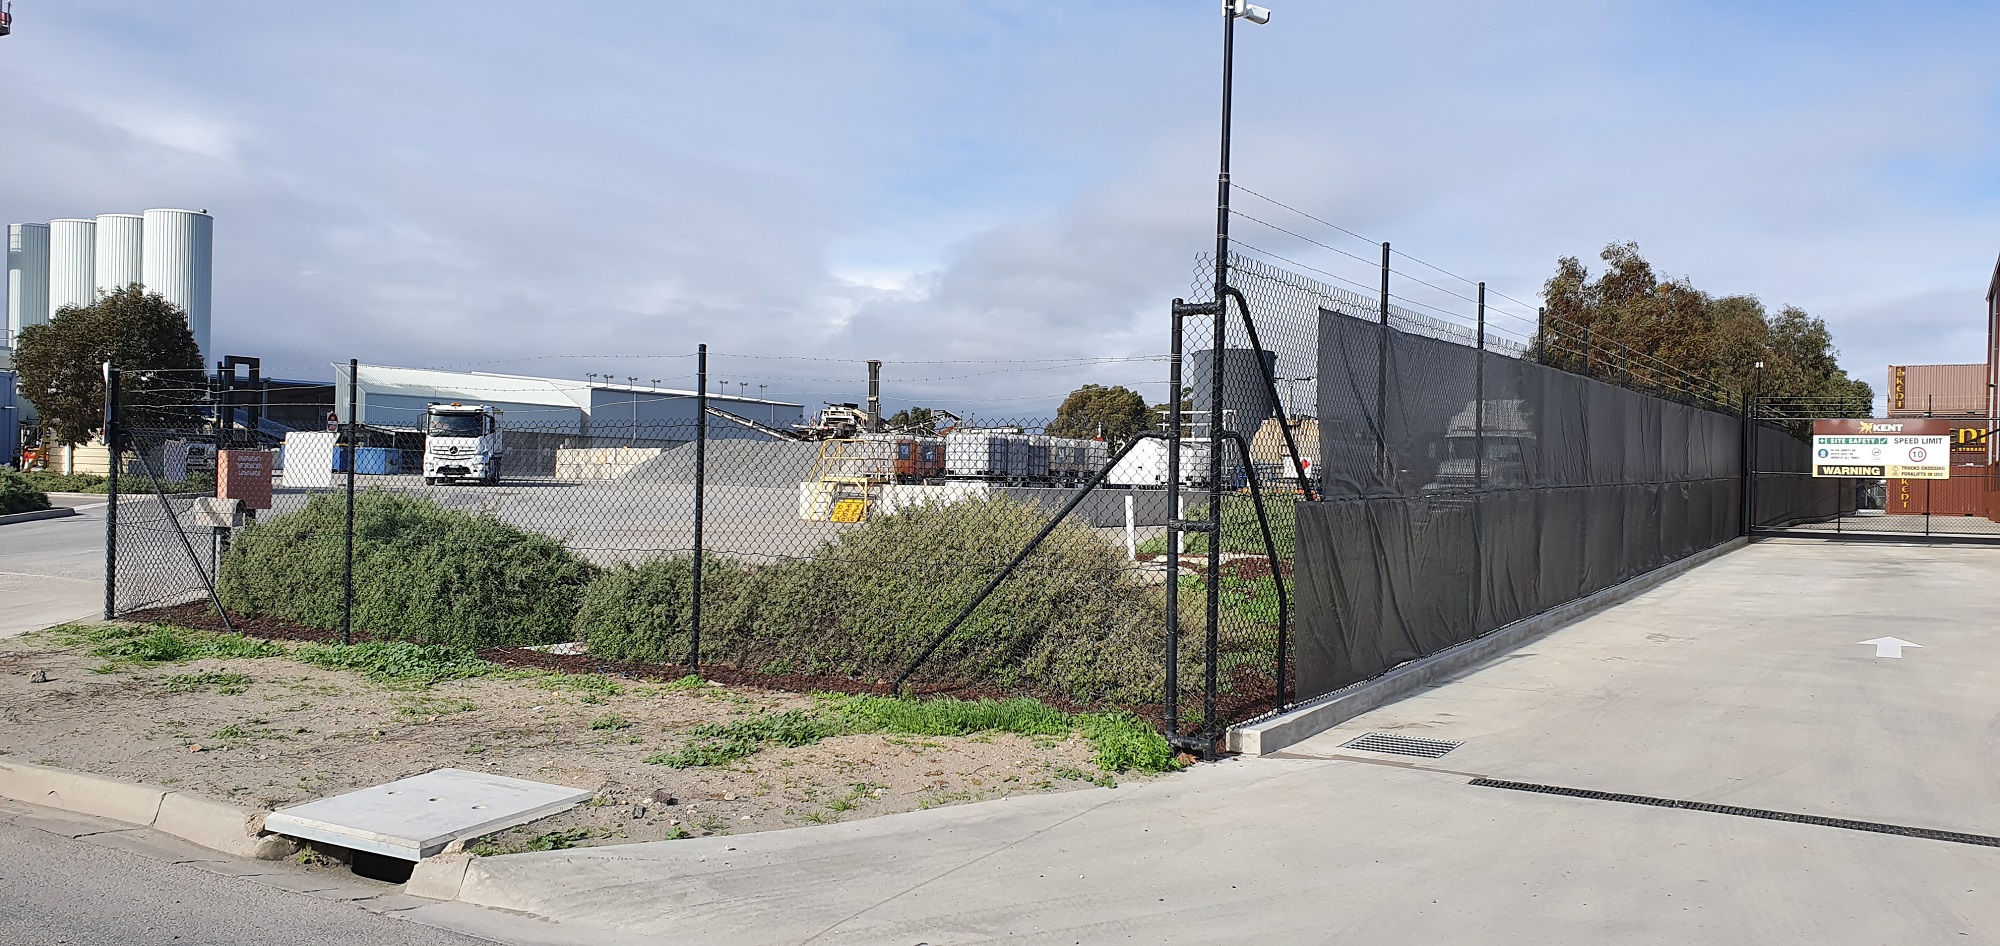 Commercial Fencing Adelaide Fence Centre Chain Mesh Security Fence Wingfield 4